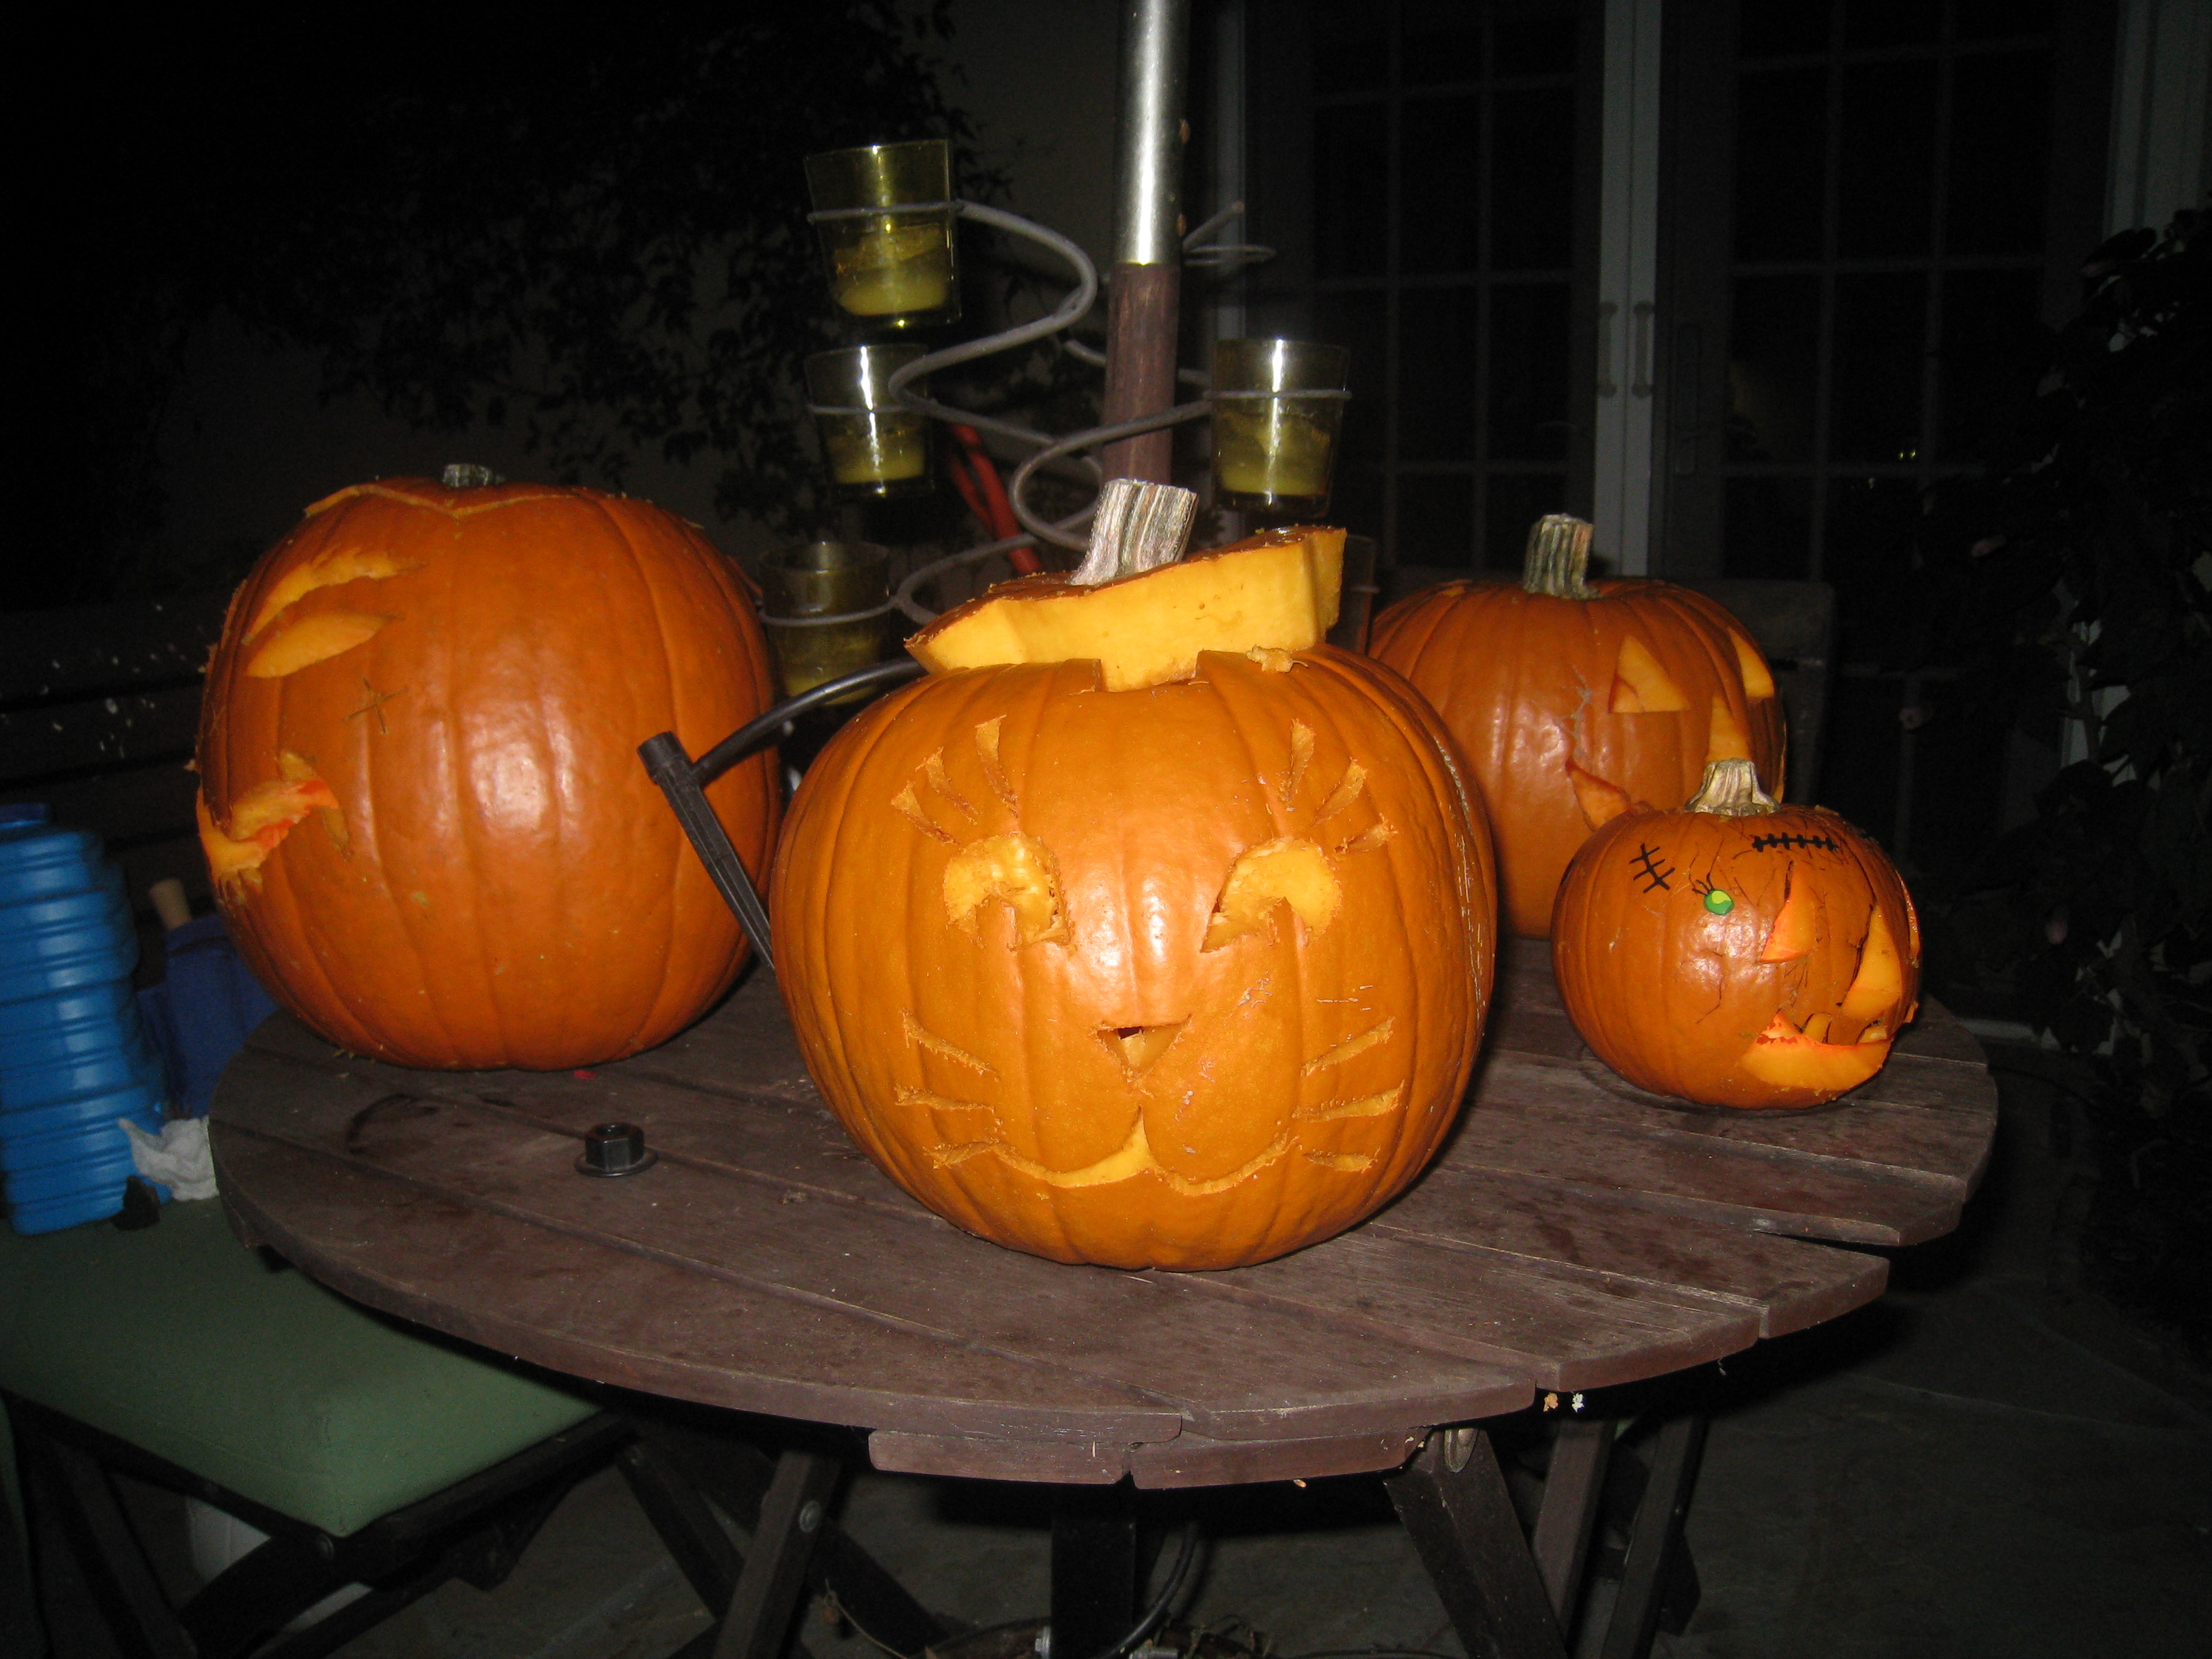 The family of pumpkins